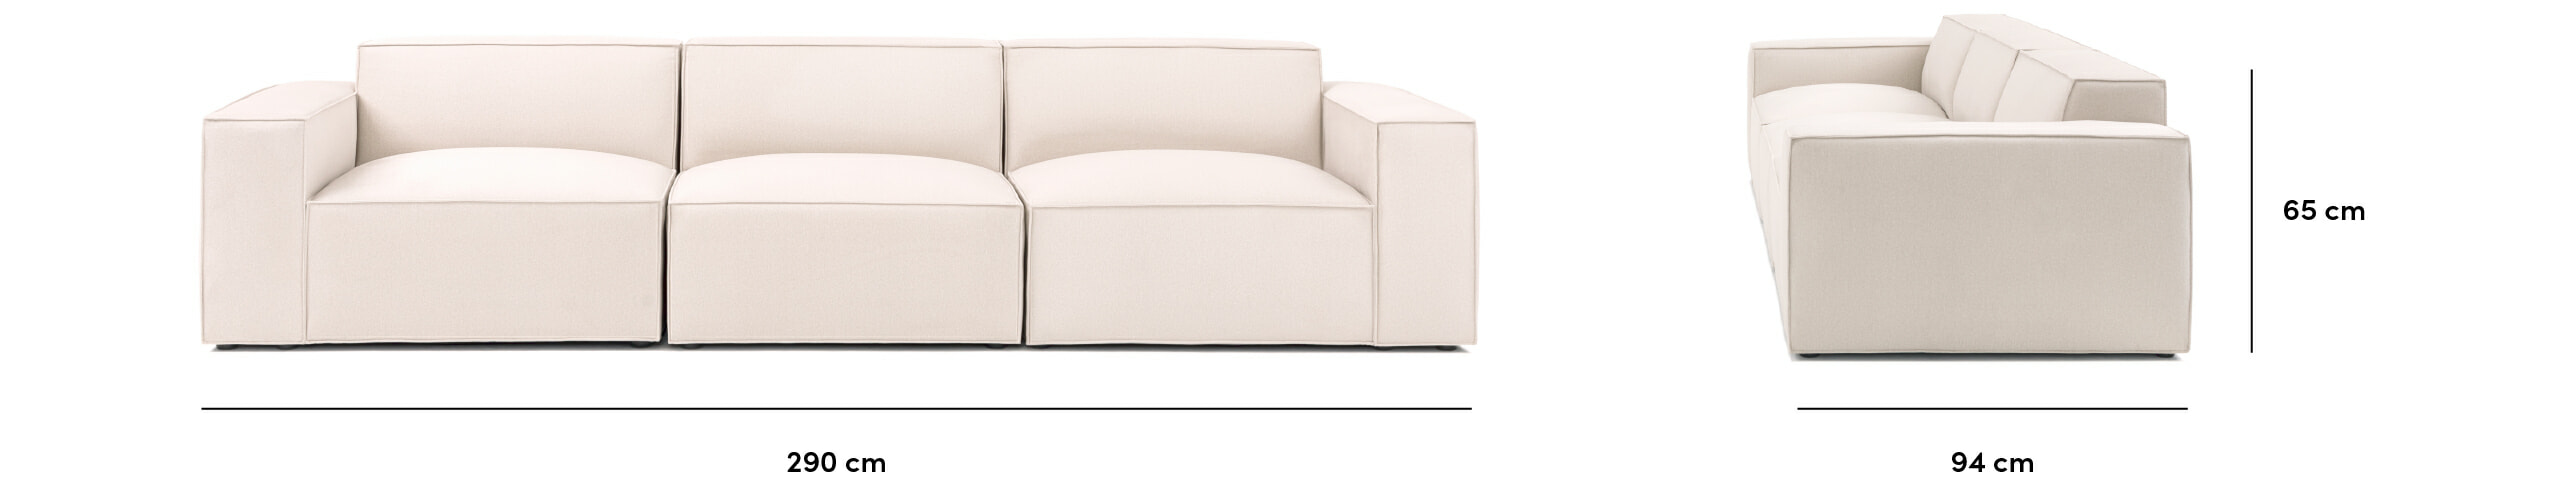 PACIFIC 3-piece modular sofa dimensions